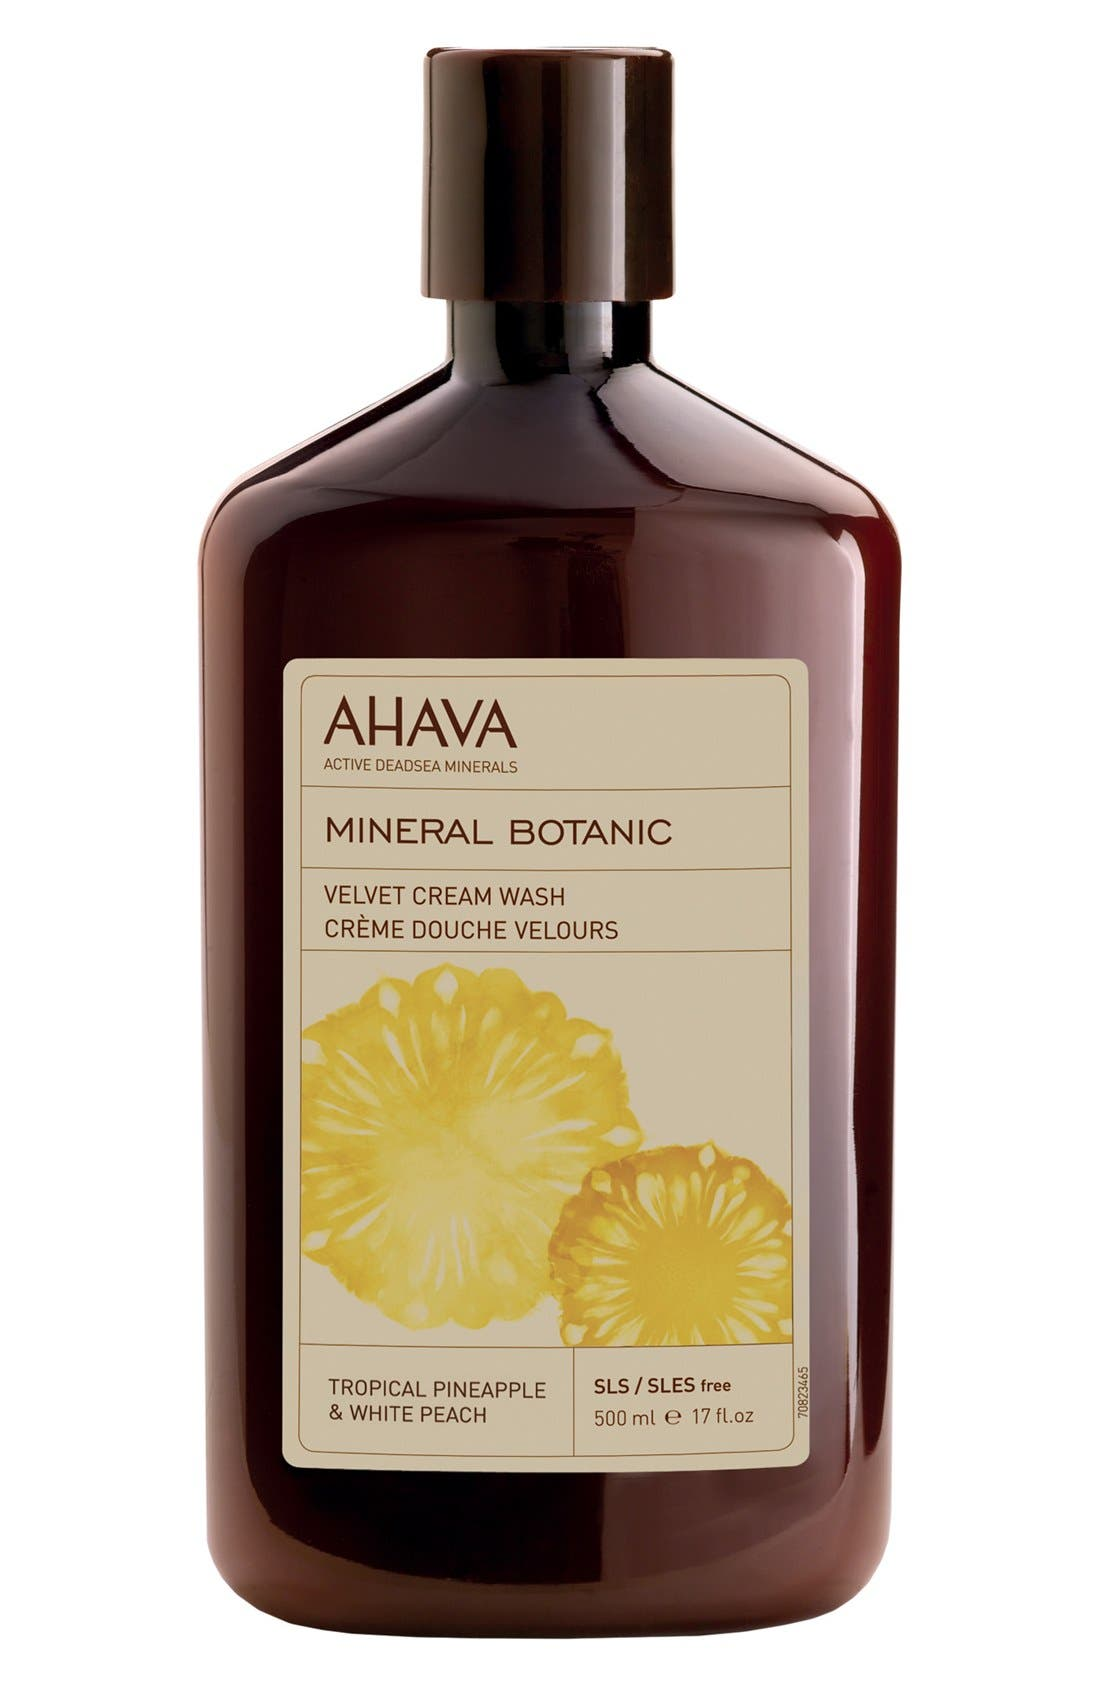 AHAVA 'Tropical Pineapple & White Peach' Mineral Botanic Velvet Cream Wash